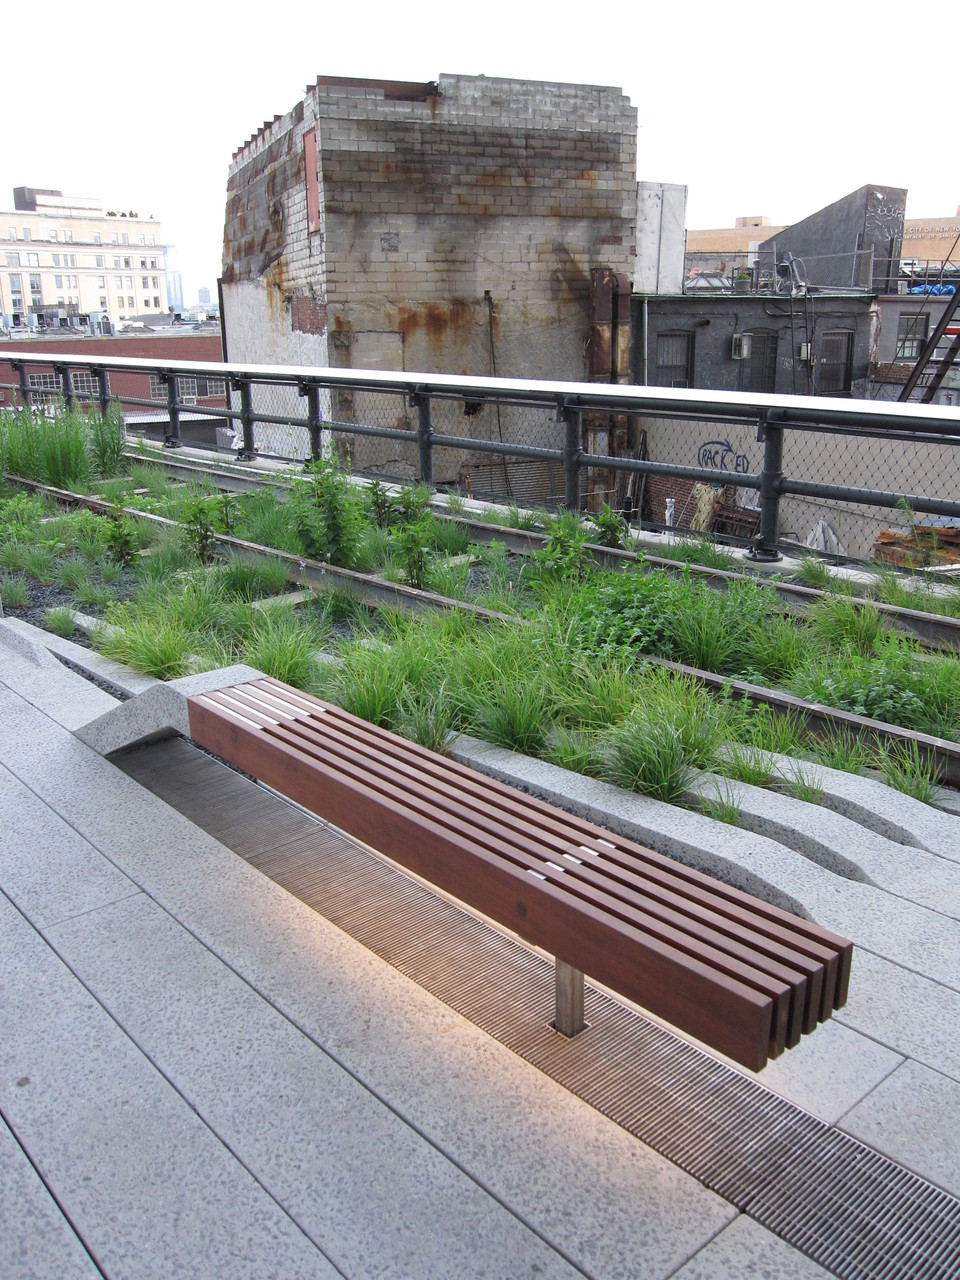 the Highline at 14st west side of manhattan..the coolest new place of the city.